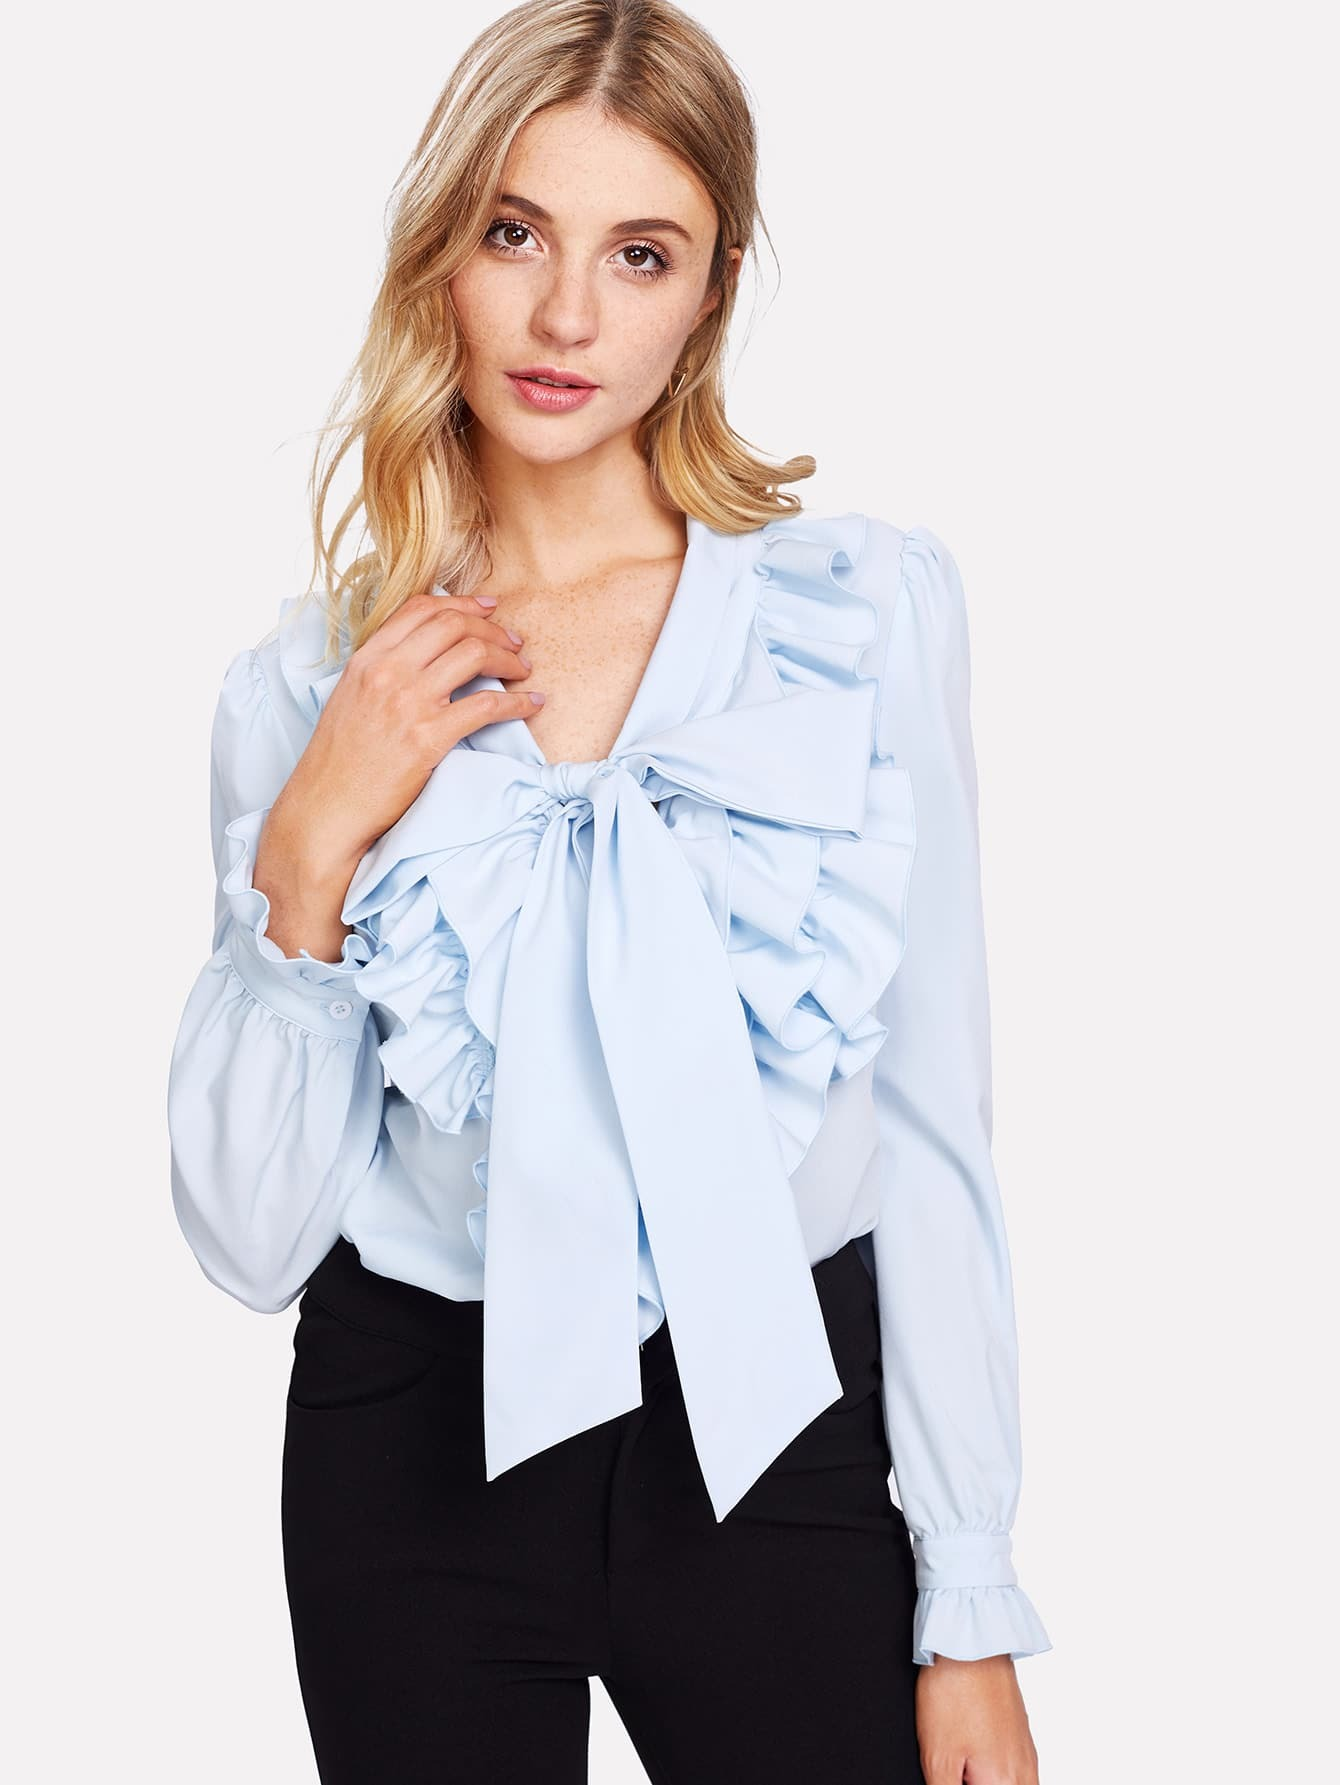 Exaggerate Bow Tie Neck Ruffle Trim Top exaggerate bow tie neck ruffle trim top